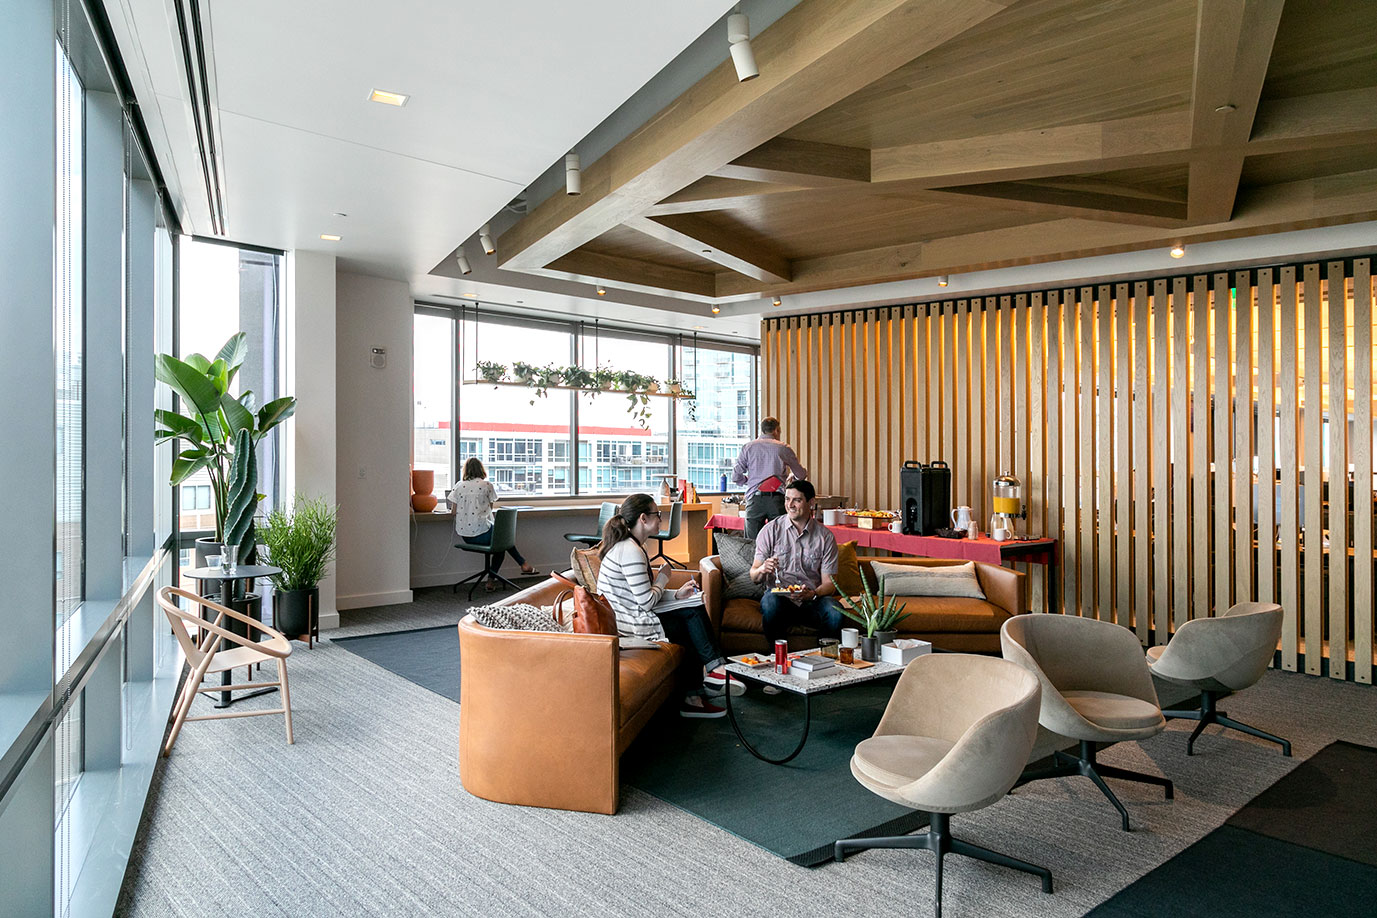 An open office area space featuring big windows, wooden architectural details in a West Coast style of design, and two employees reposing on a plush sofa.